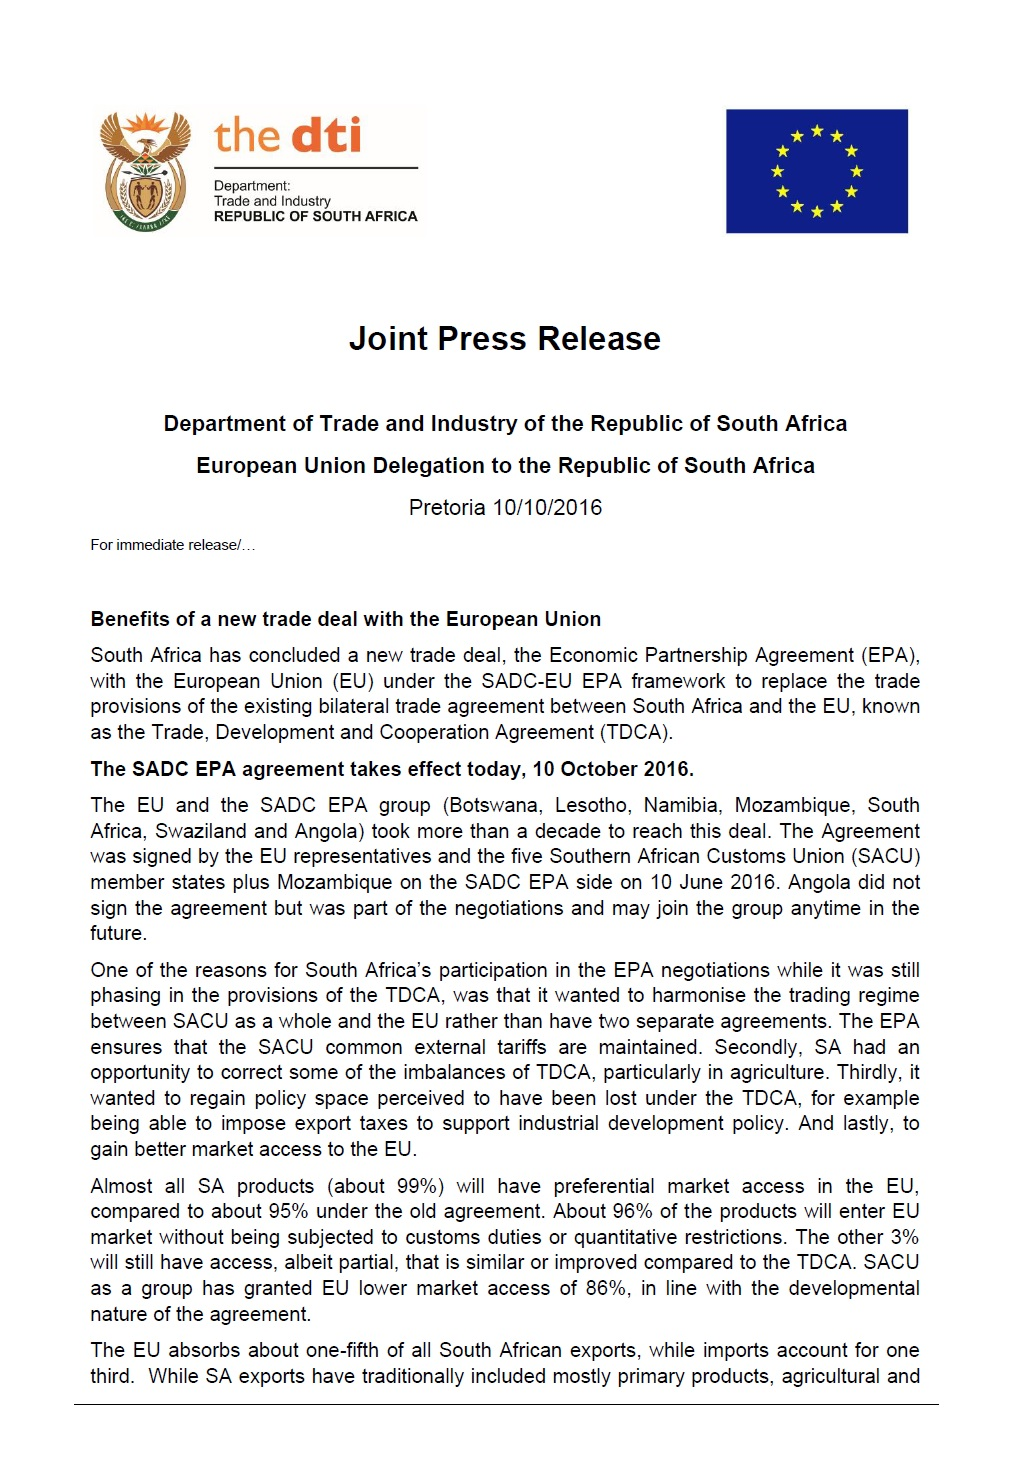 South Africa Sadc Epa Agreement With The Eu Takes Effect Today